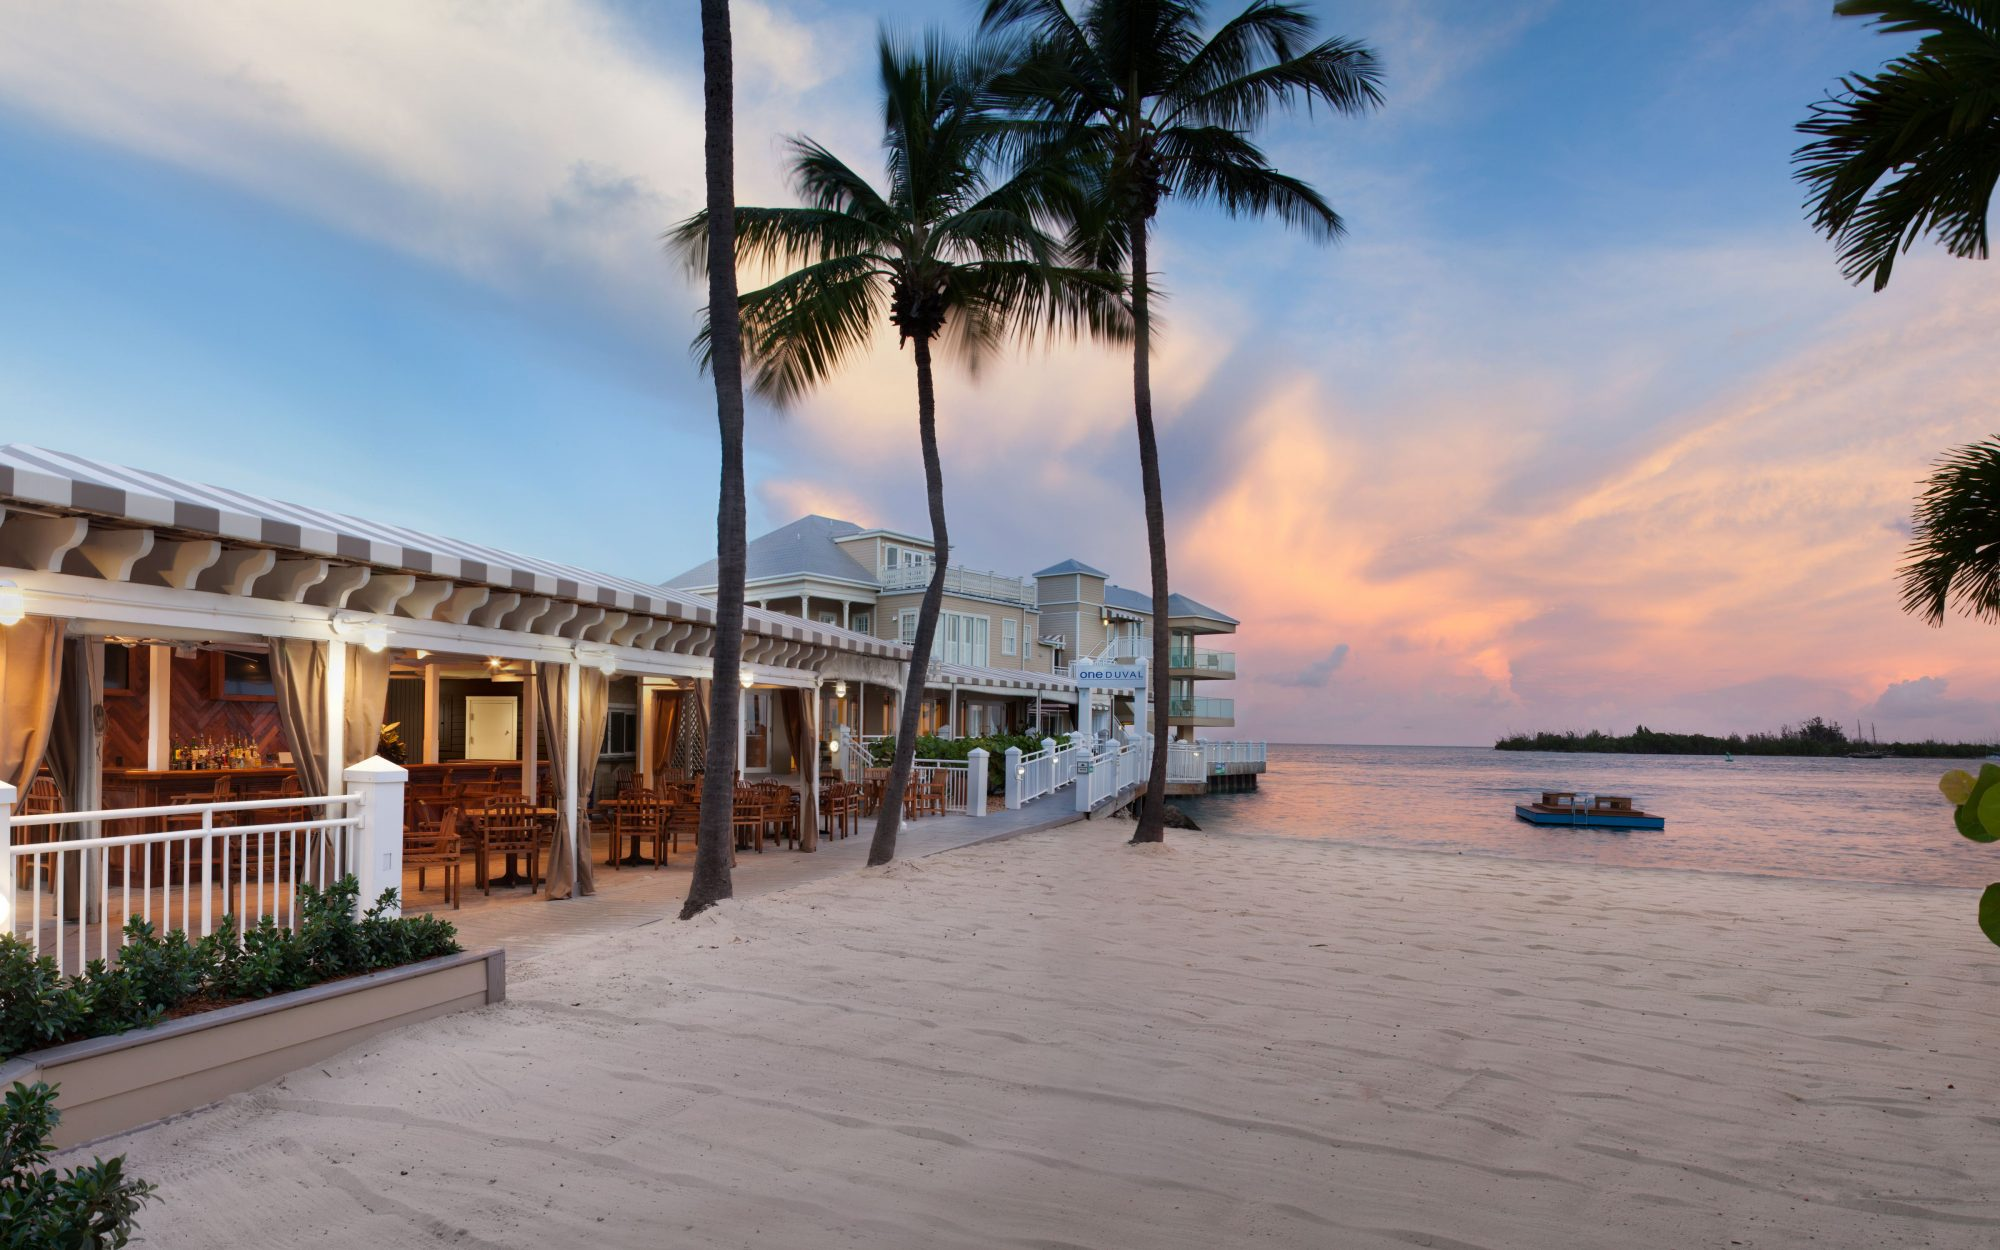 Best Resorts in the Continental U.S.: The Pier House Resort & Caribbean Spa Key West